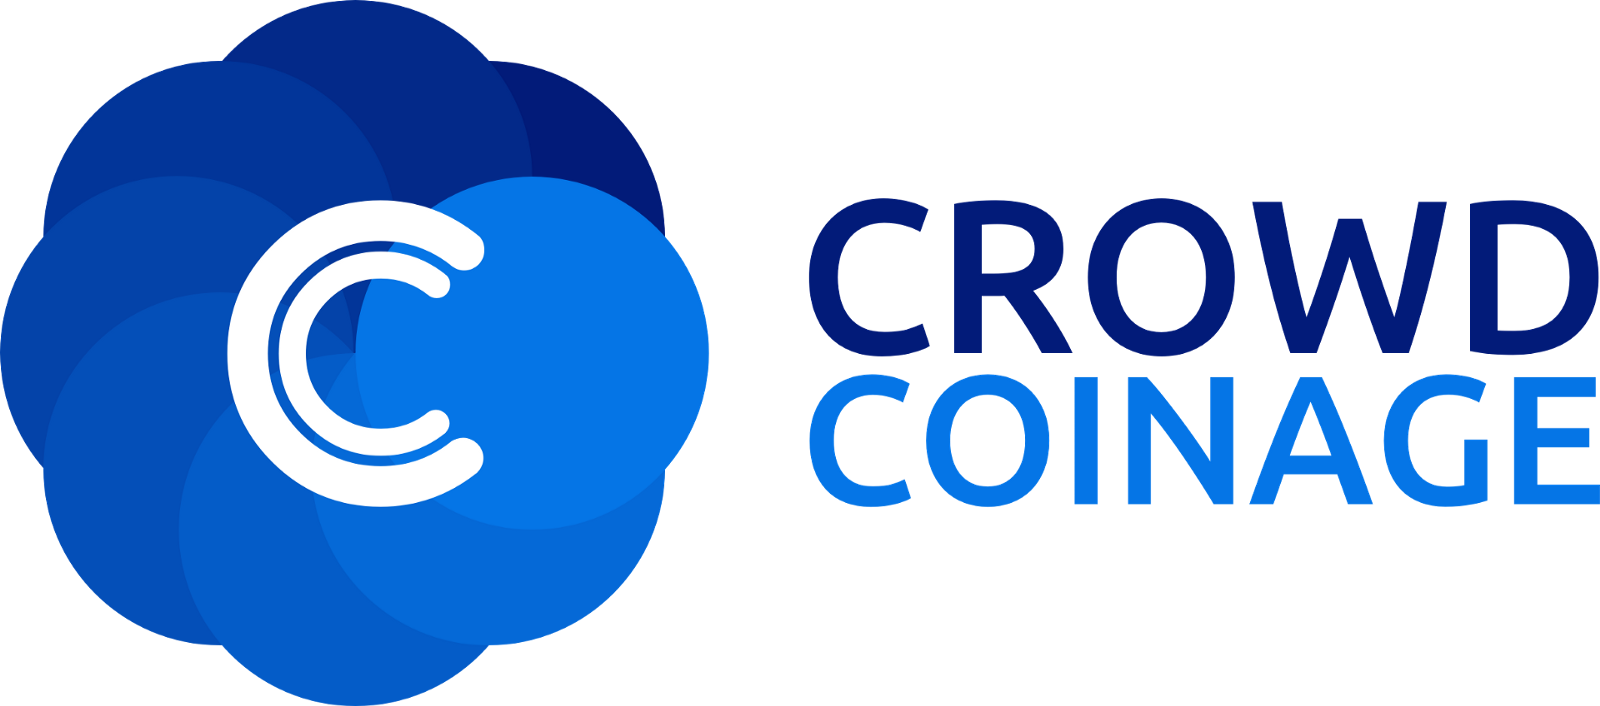 Goals clipart gambar. All about cryptocoins crowdcoinage